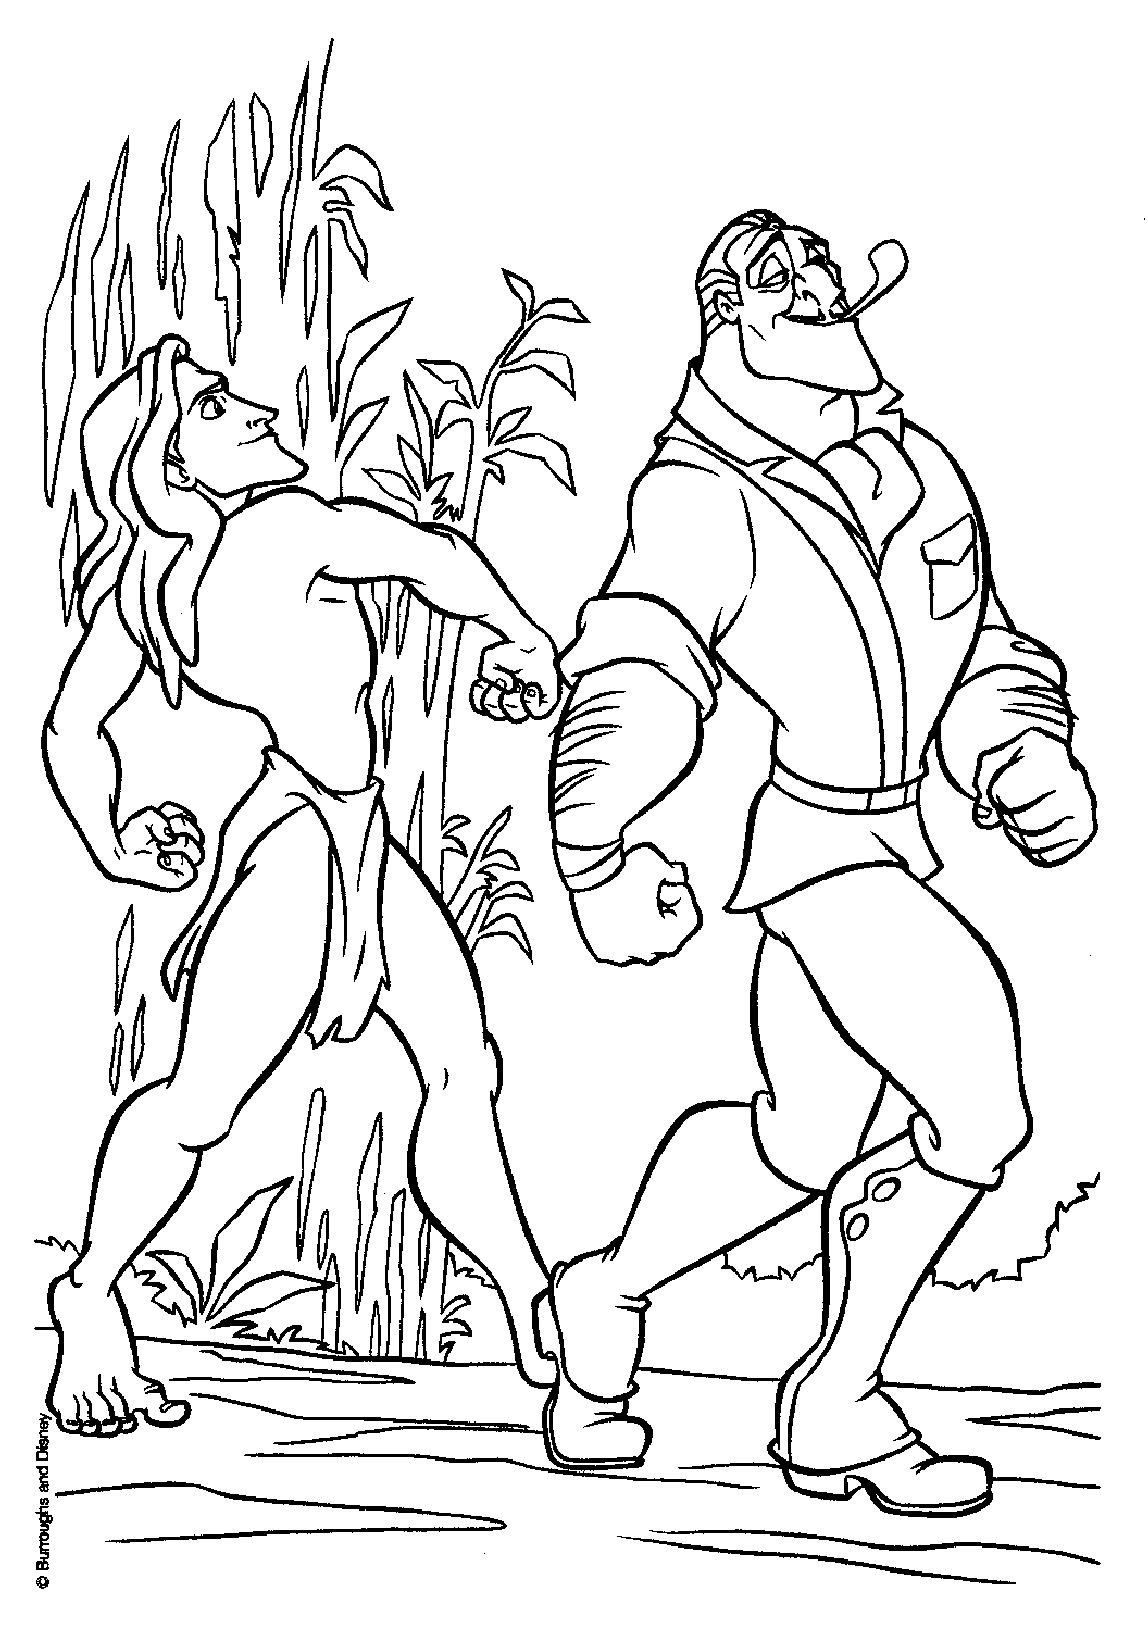 tarzan023.jpg (1148×1635) | color pages | Pinterest | Coloring books